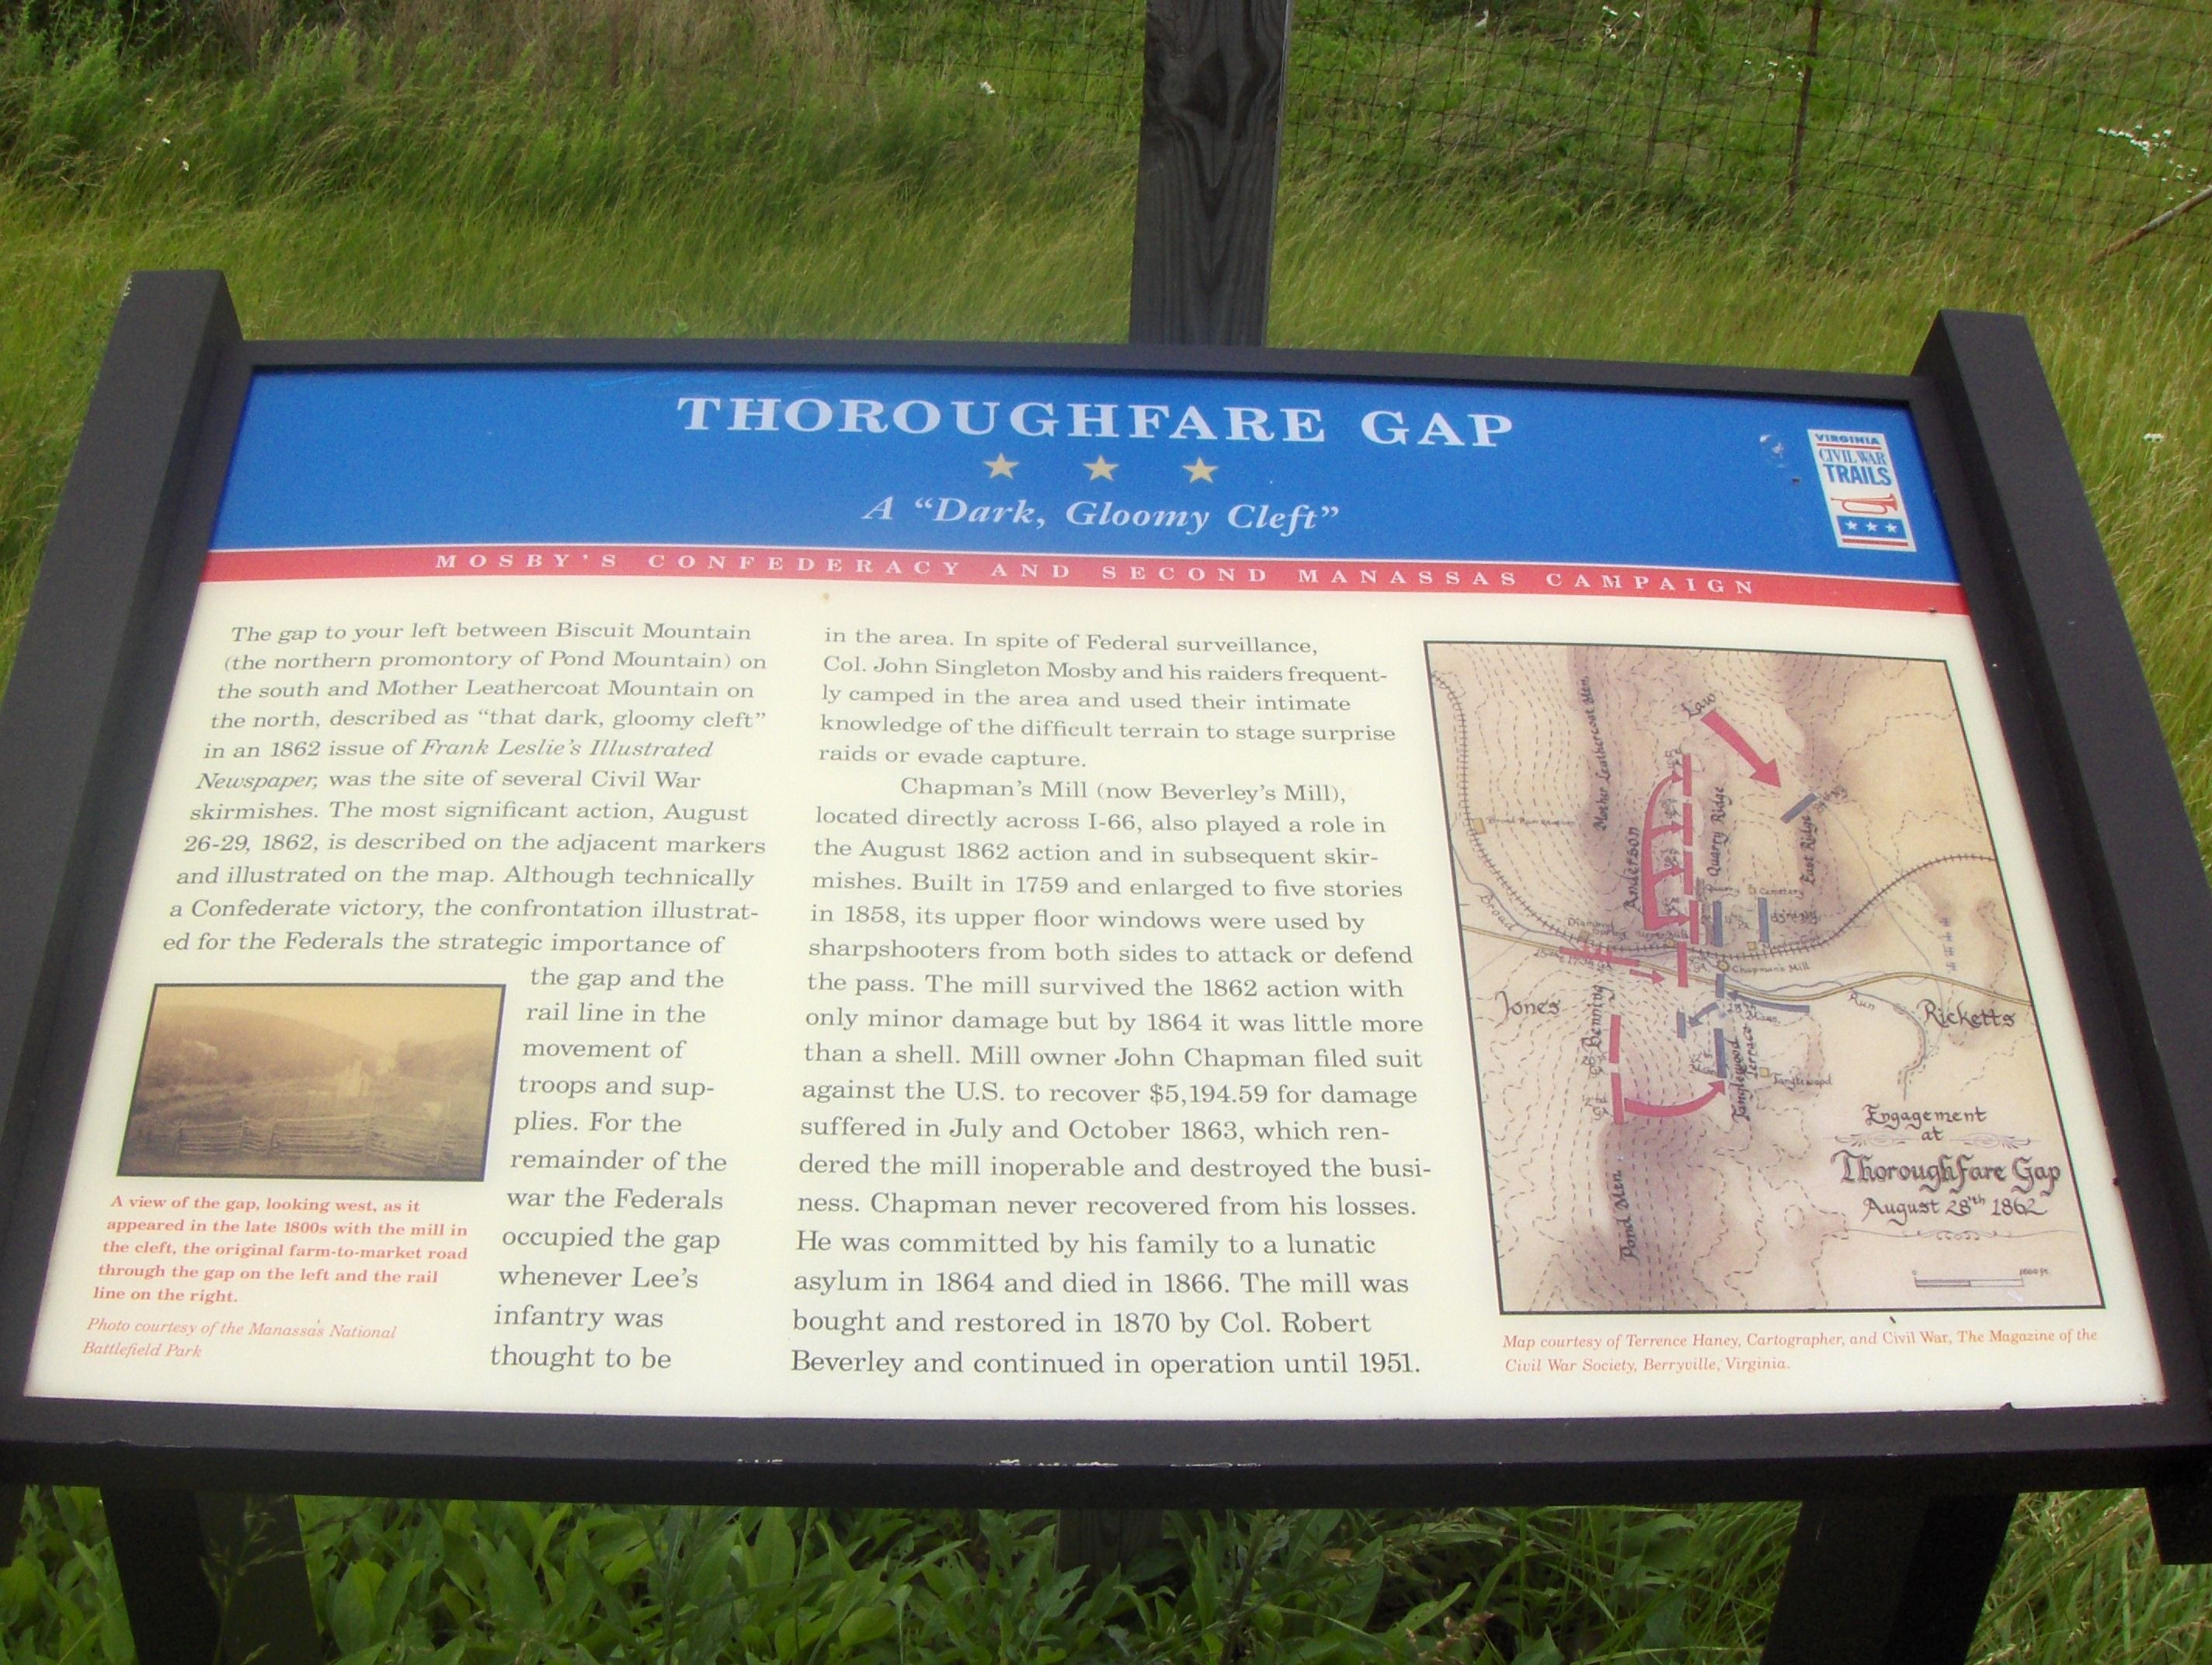 Thoroughfare Gap